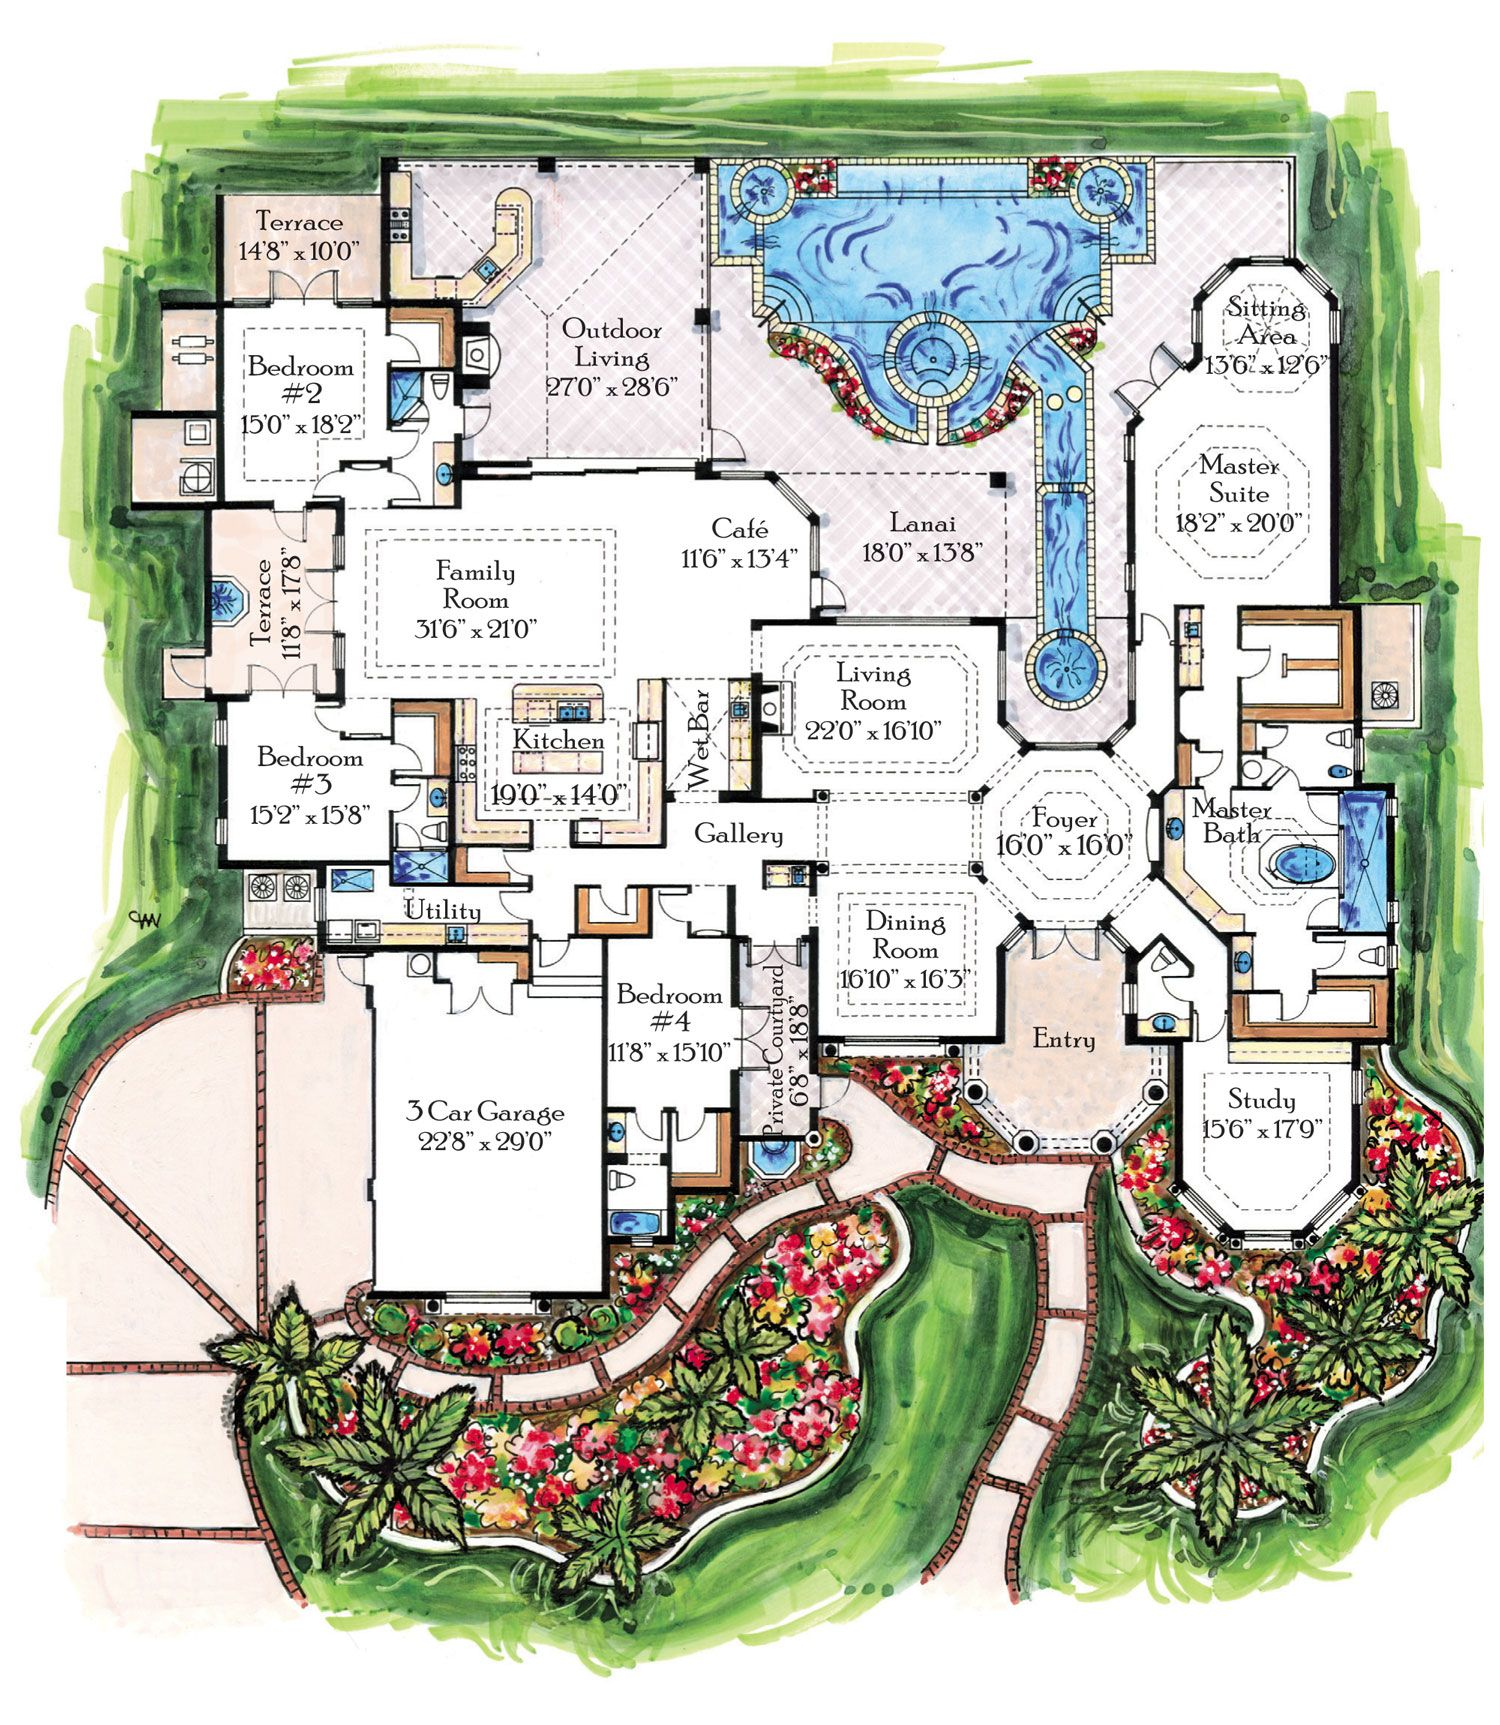 Luxury House Plans With Pools: Luxury Homes And Plans, Designs For Traditional Castles